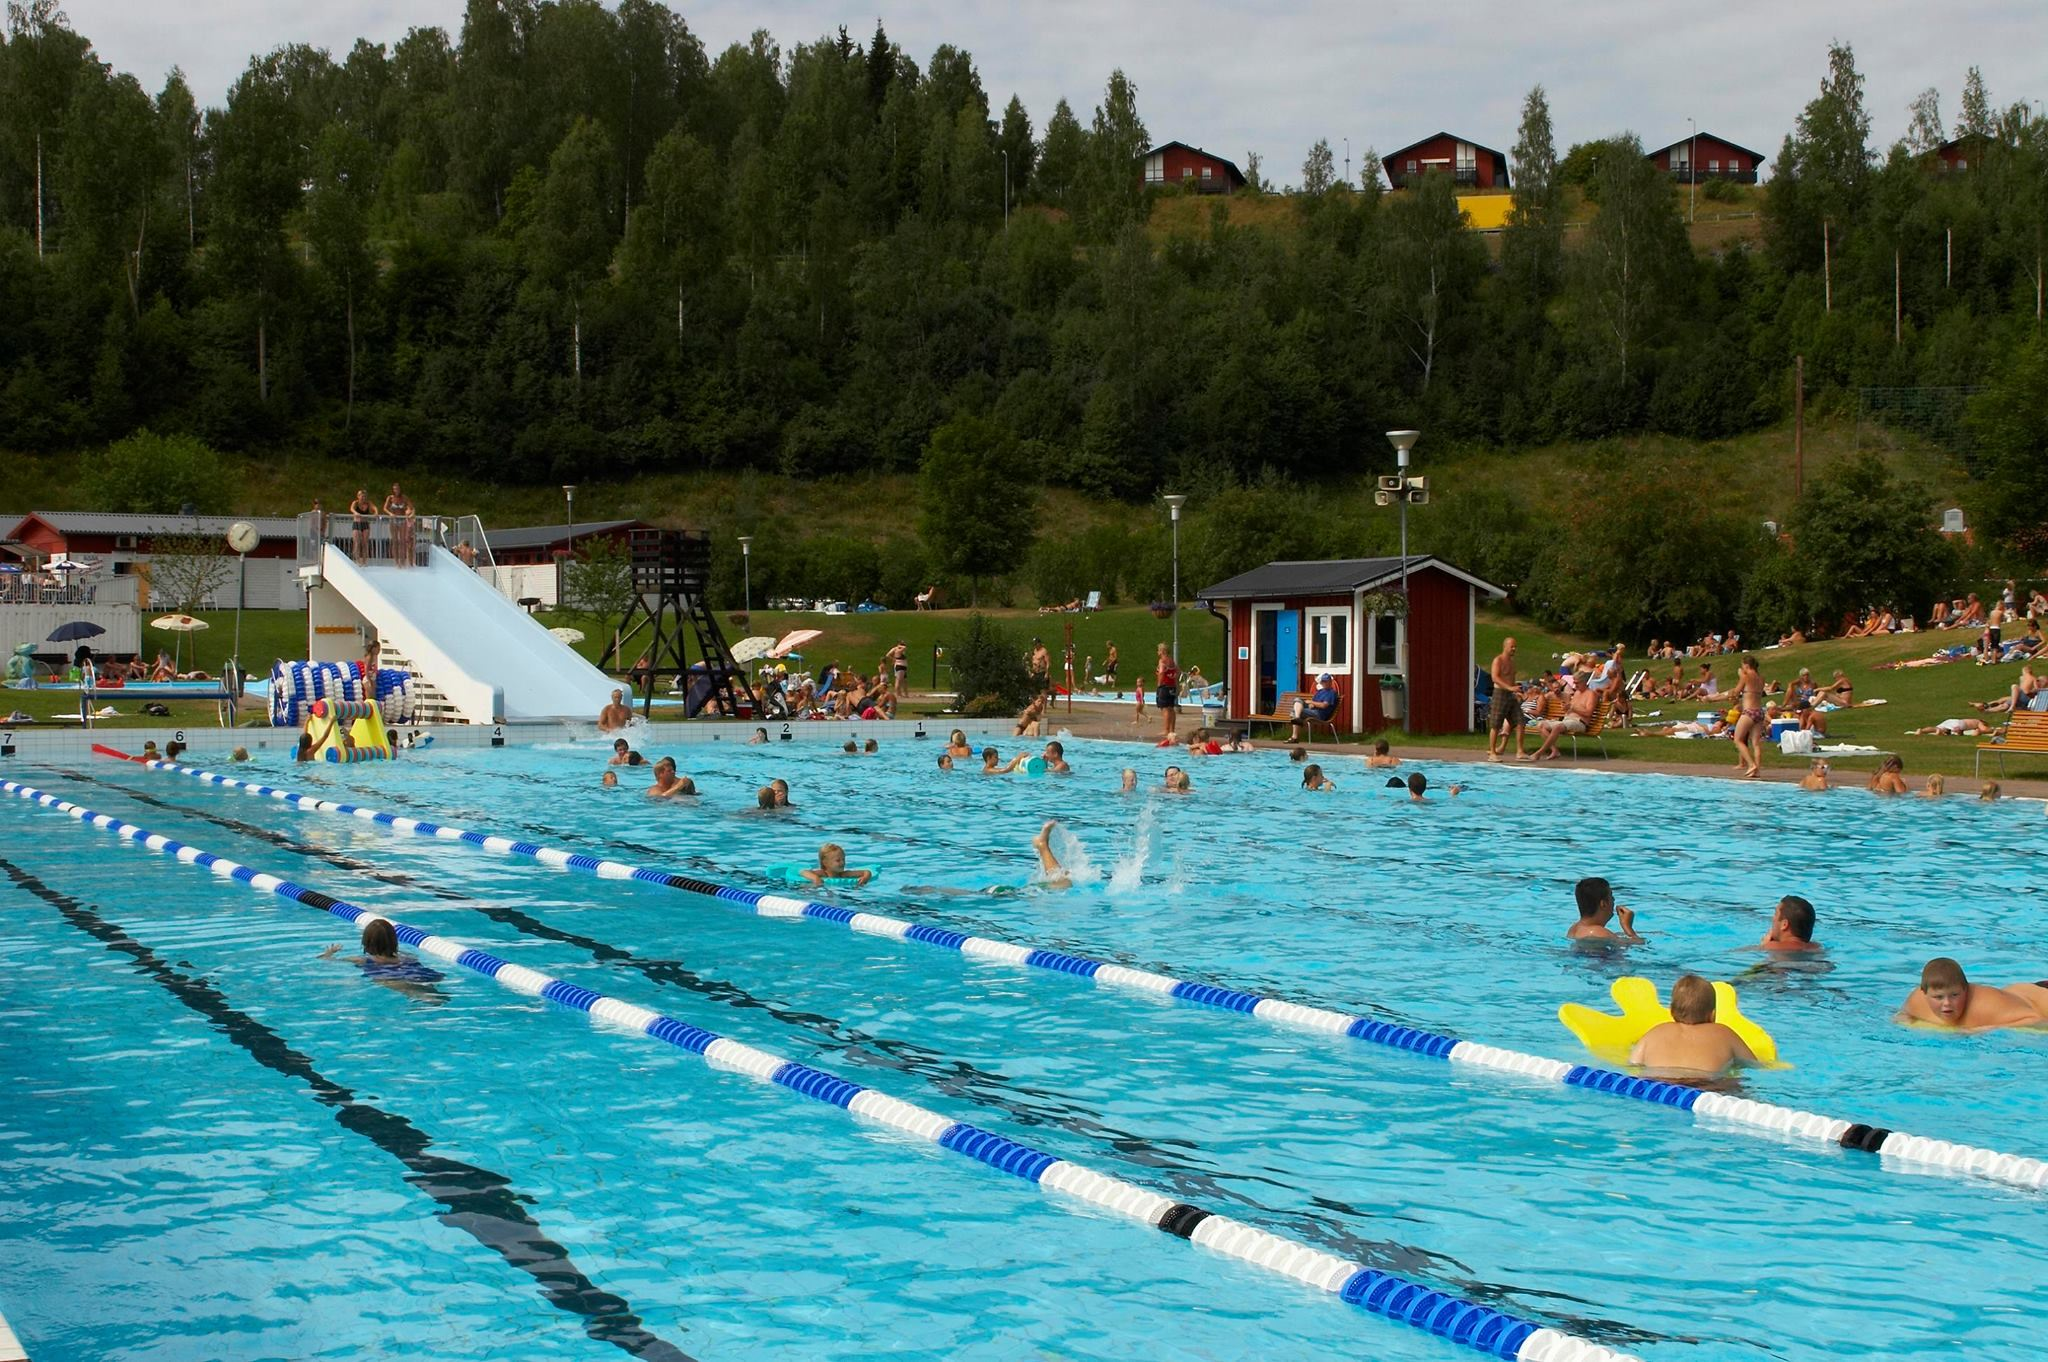 Poolparty: 40årskalas